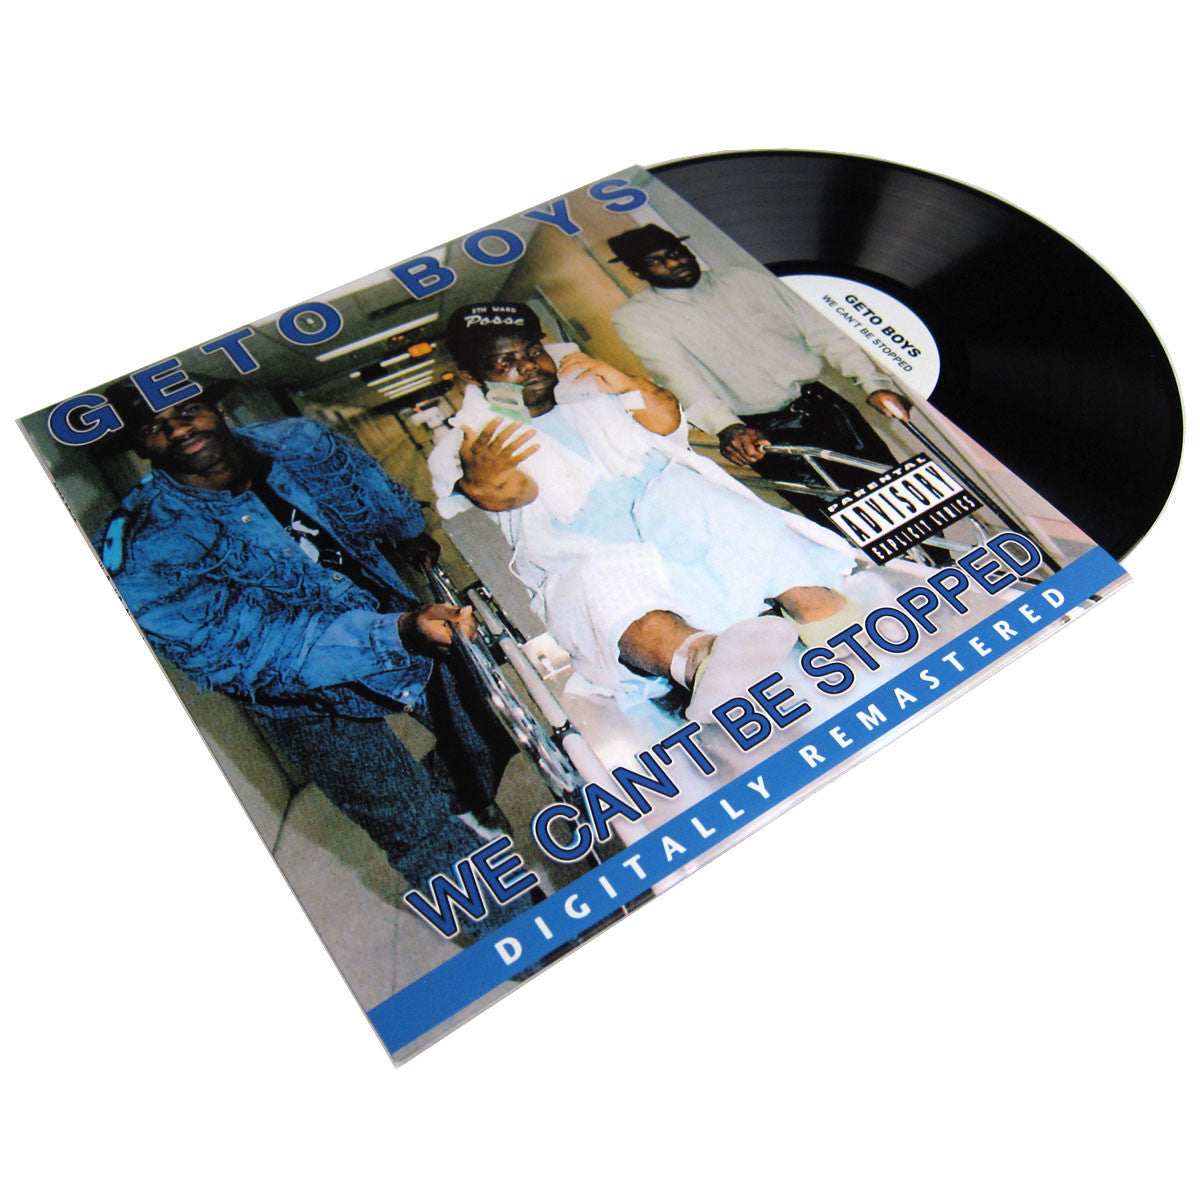 Geto Boys: We Can't Be Stopped Vinyl LP